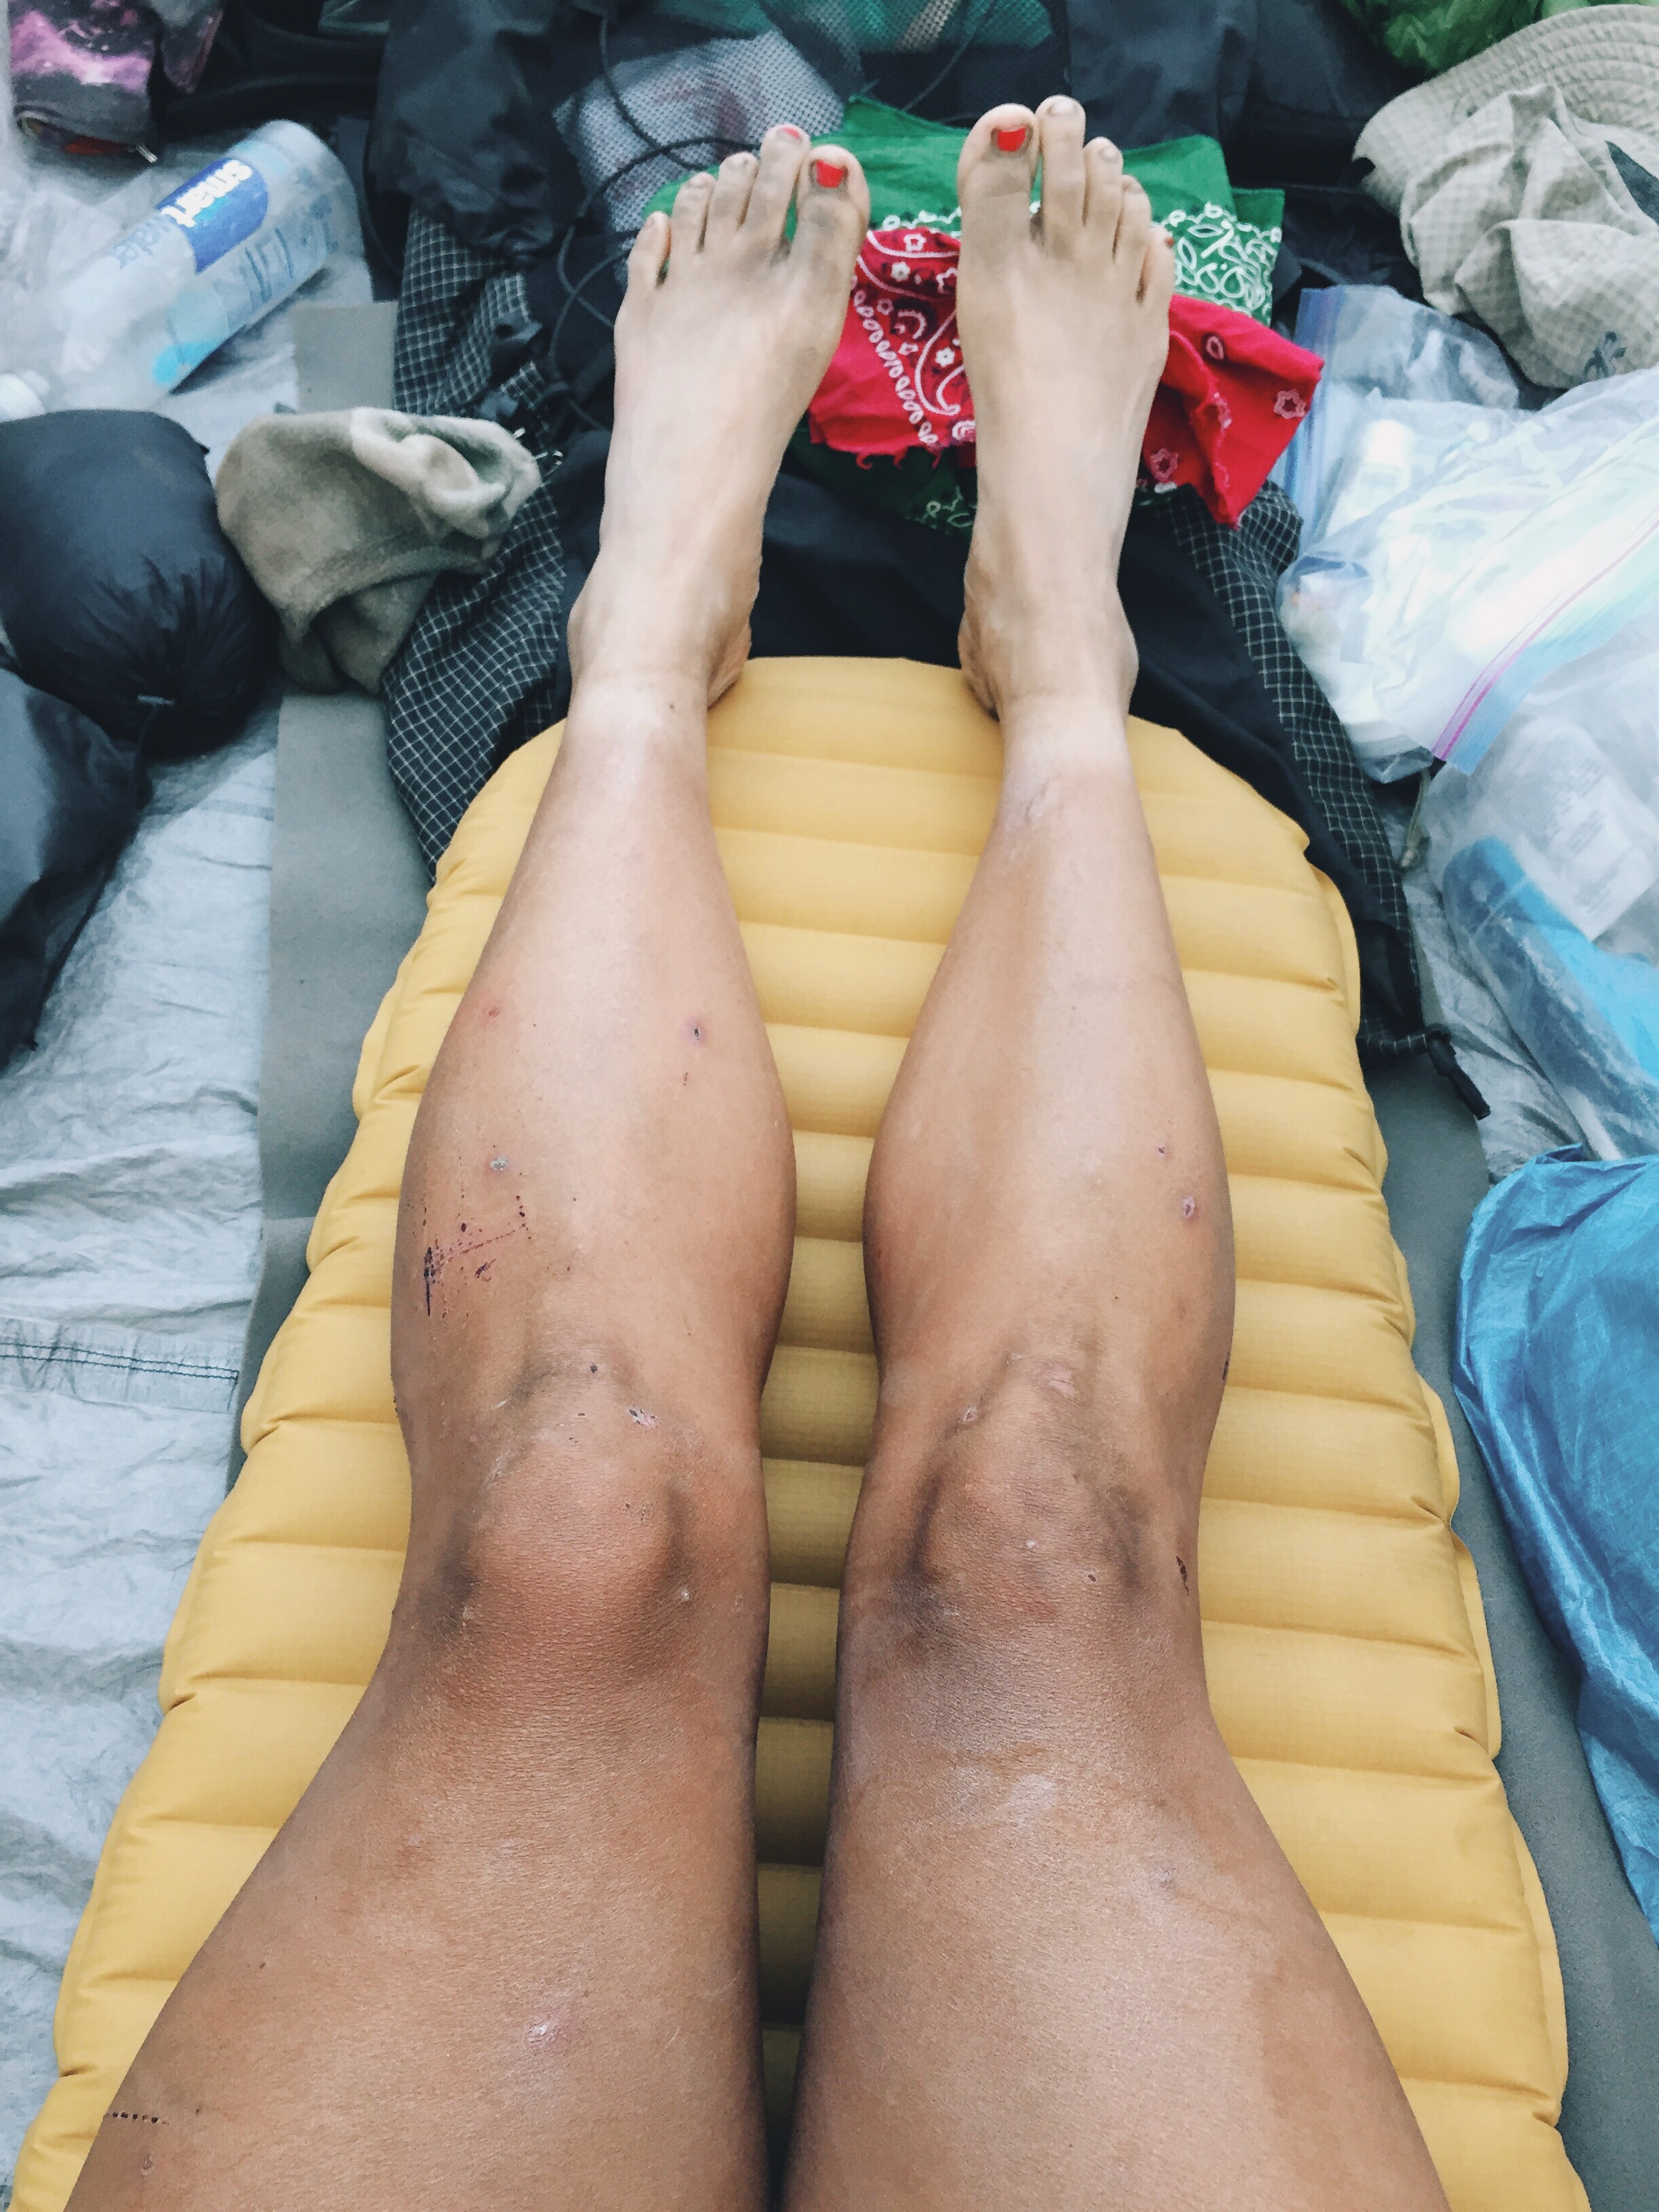 Legs looking so tore up these days.